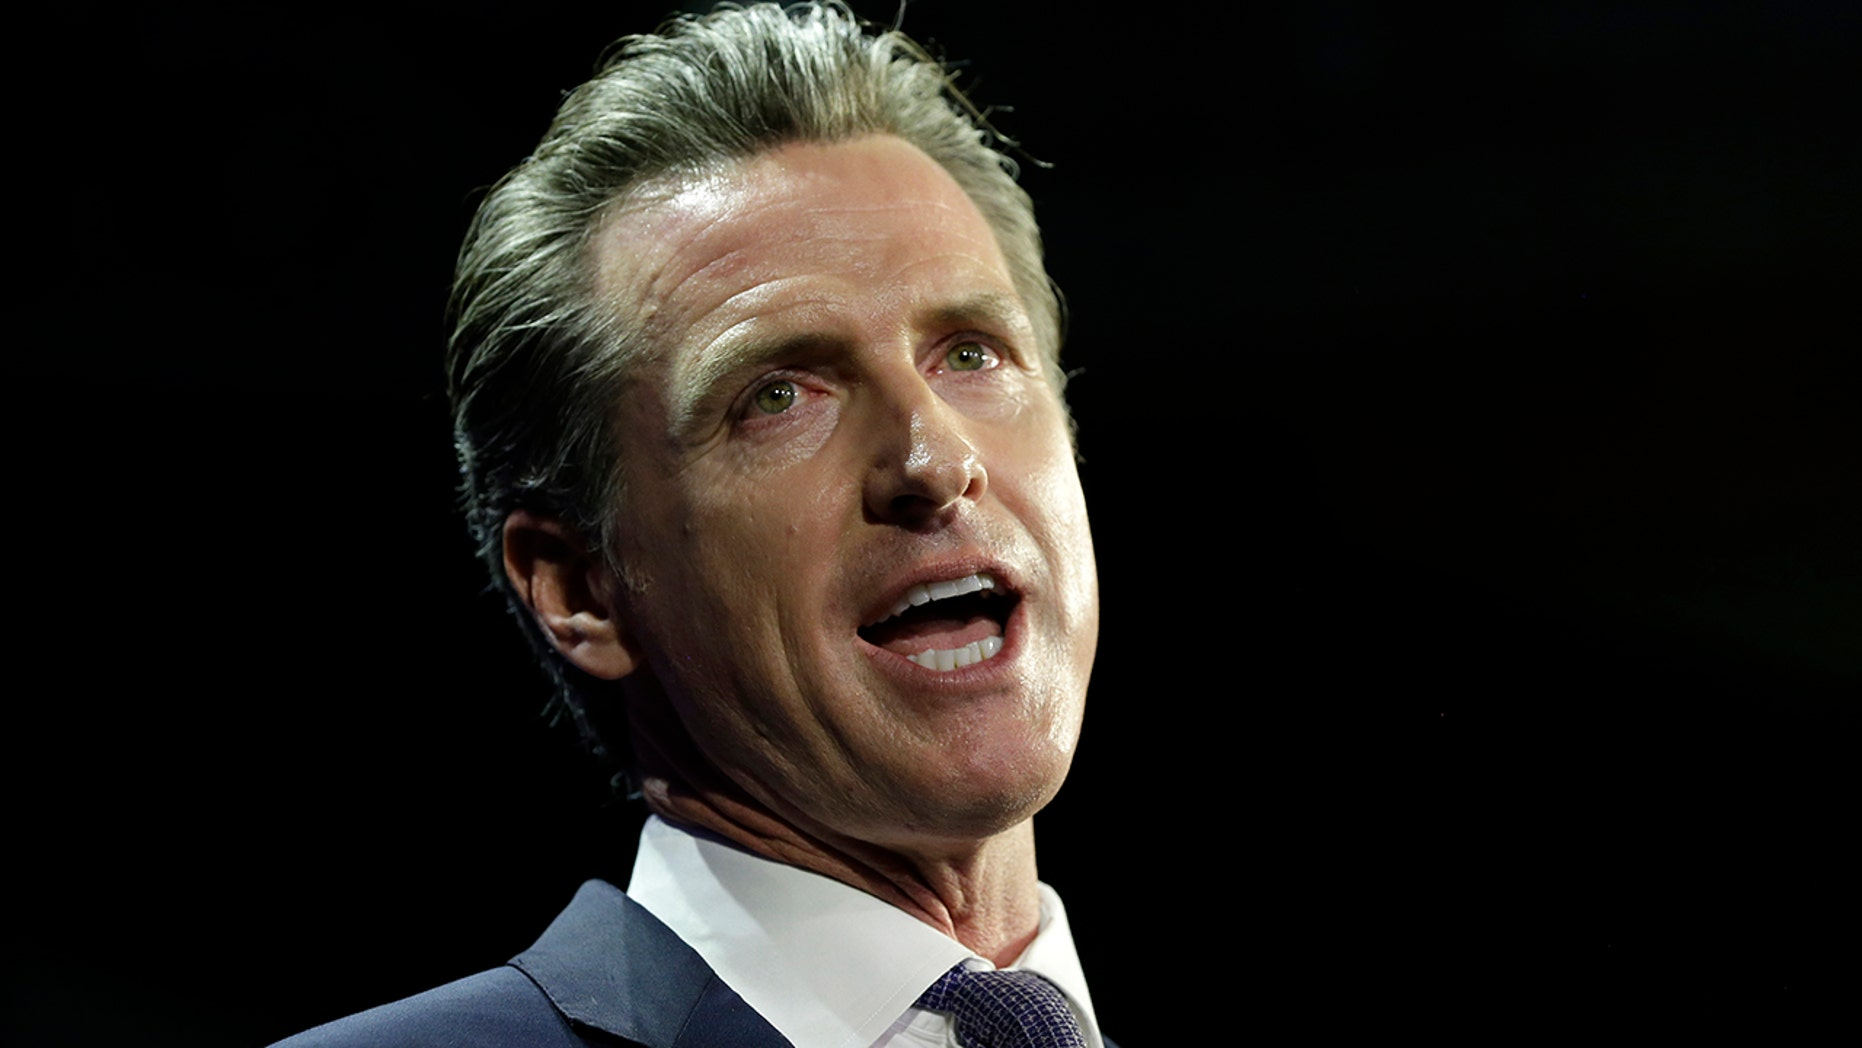 Lt. Gov Gavin Newsom, a Democrat, addresses an election night crowd after he defeated Republican John Cox to become the 40th governor of California Tuesday, Nov. 6, 2018, in Los Angeles. (AP Photo/Rich Pedroncelli)